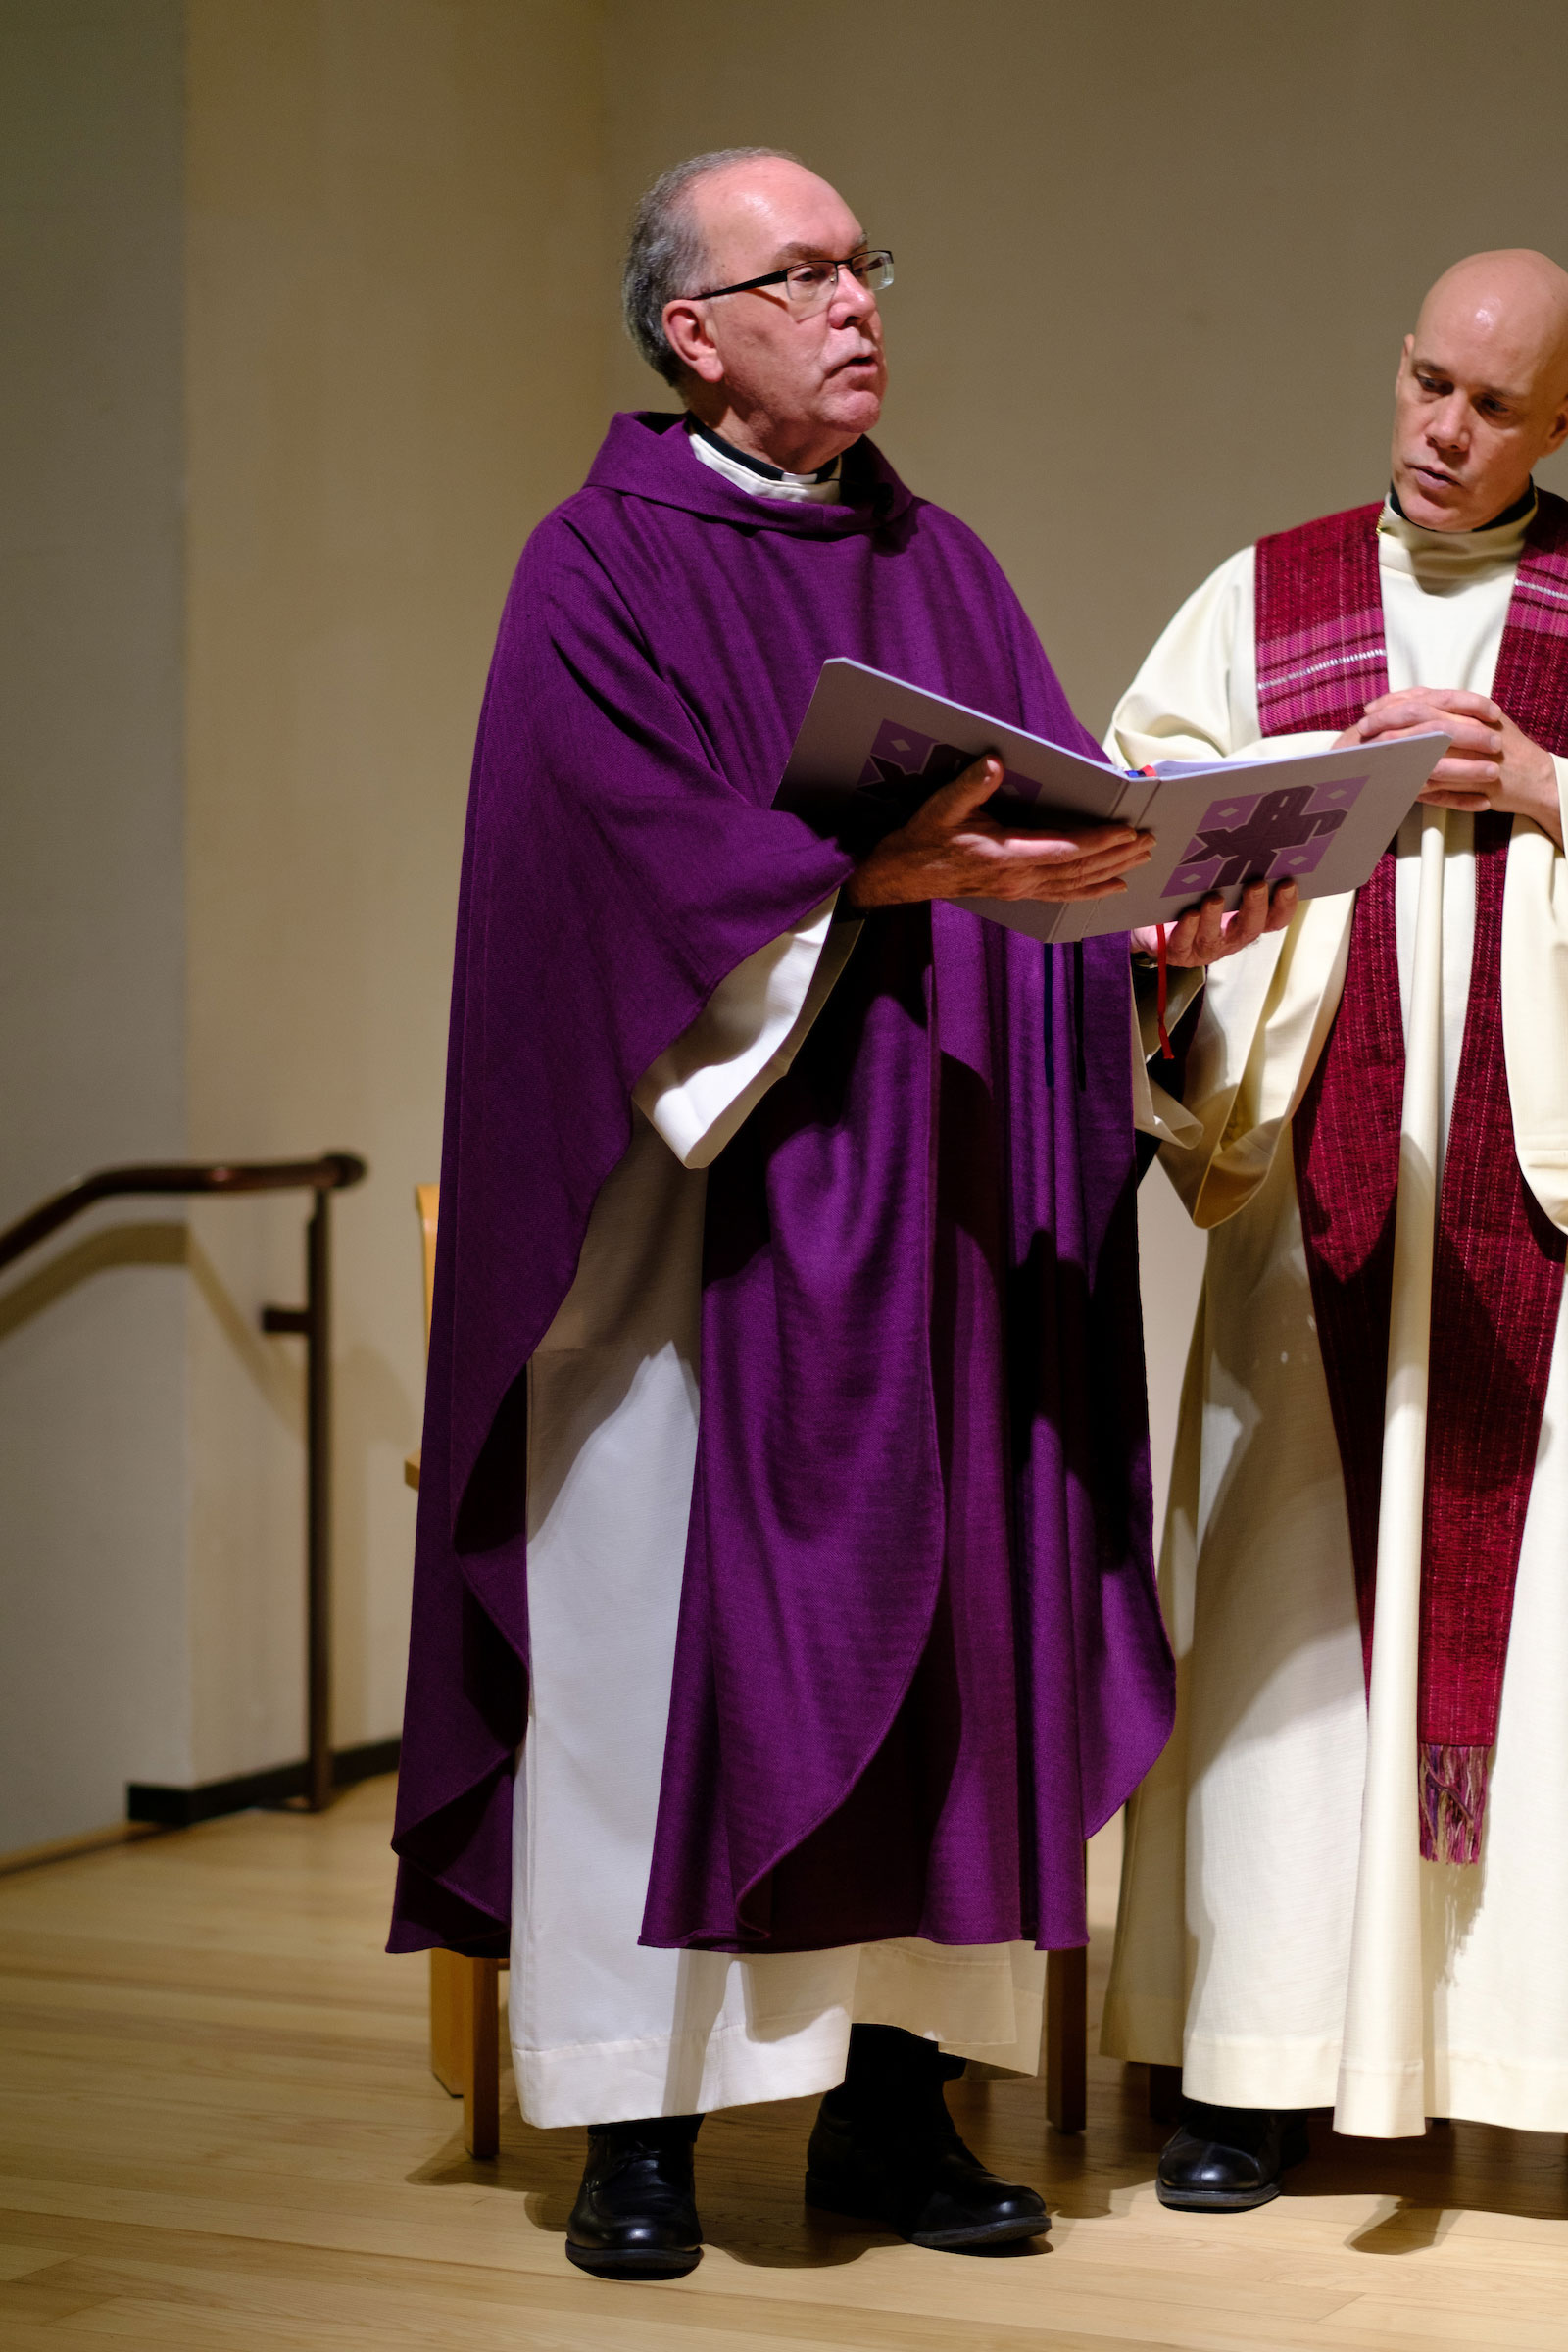 Fr. Steve Sundborg in his violet liturgical robes at the Advent Mass